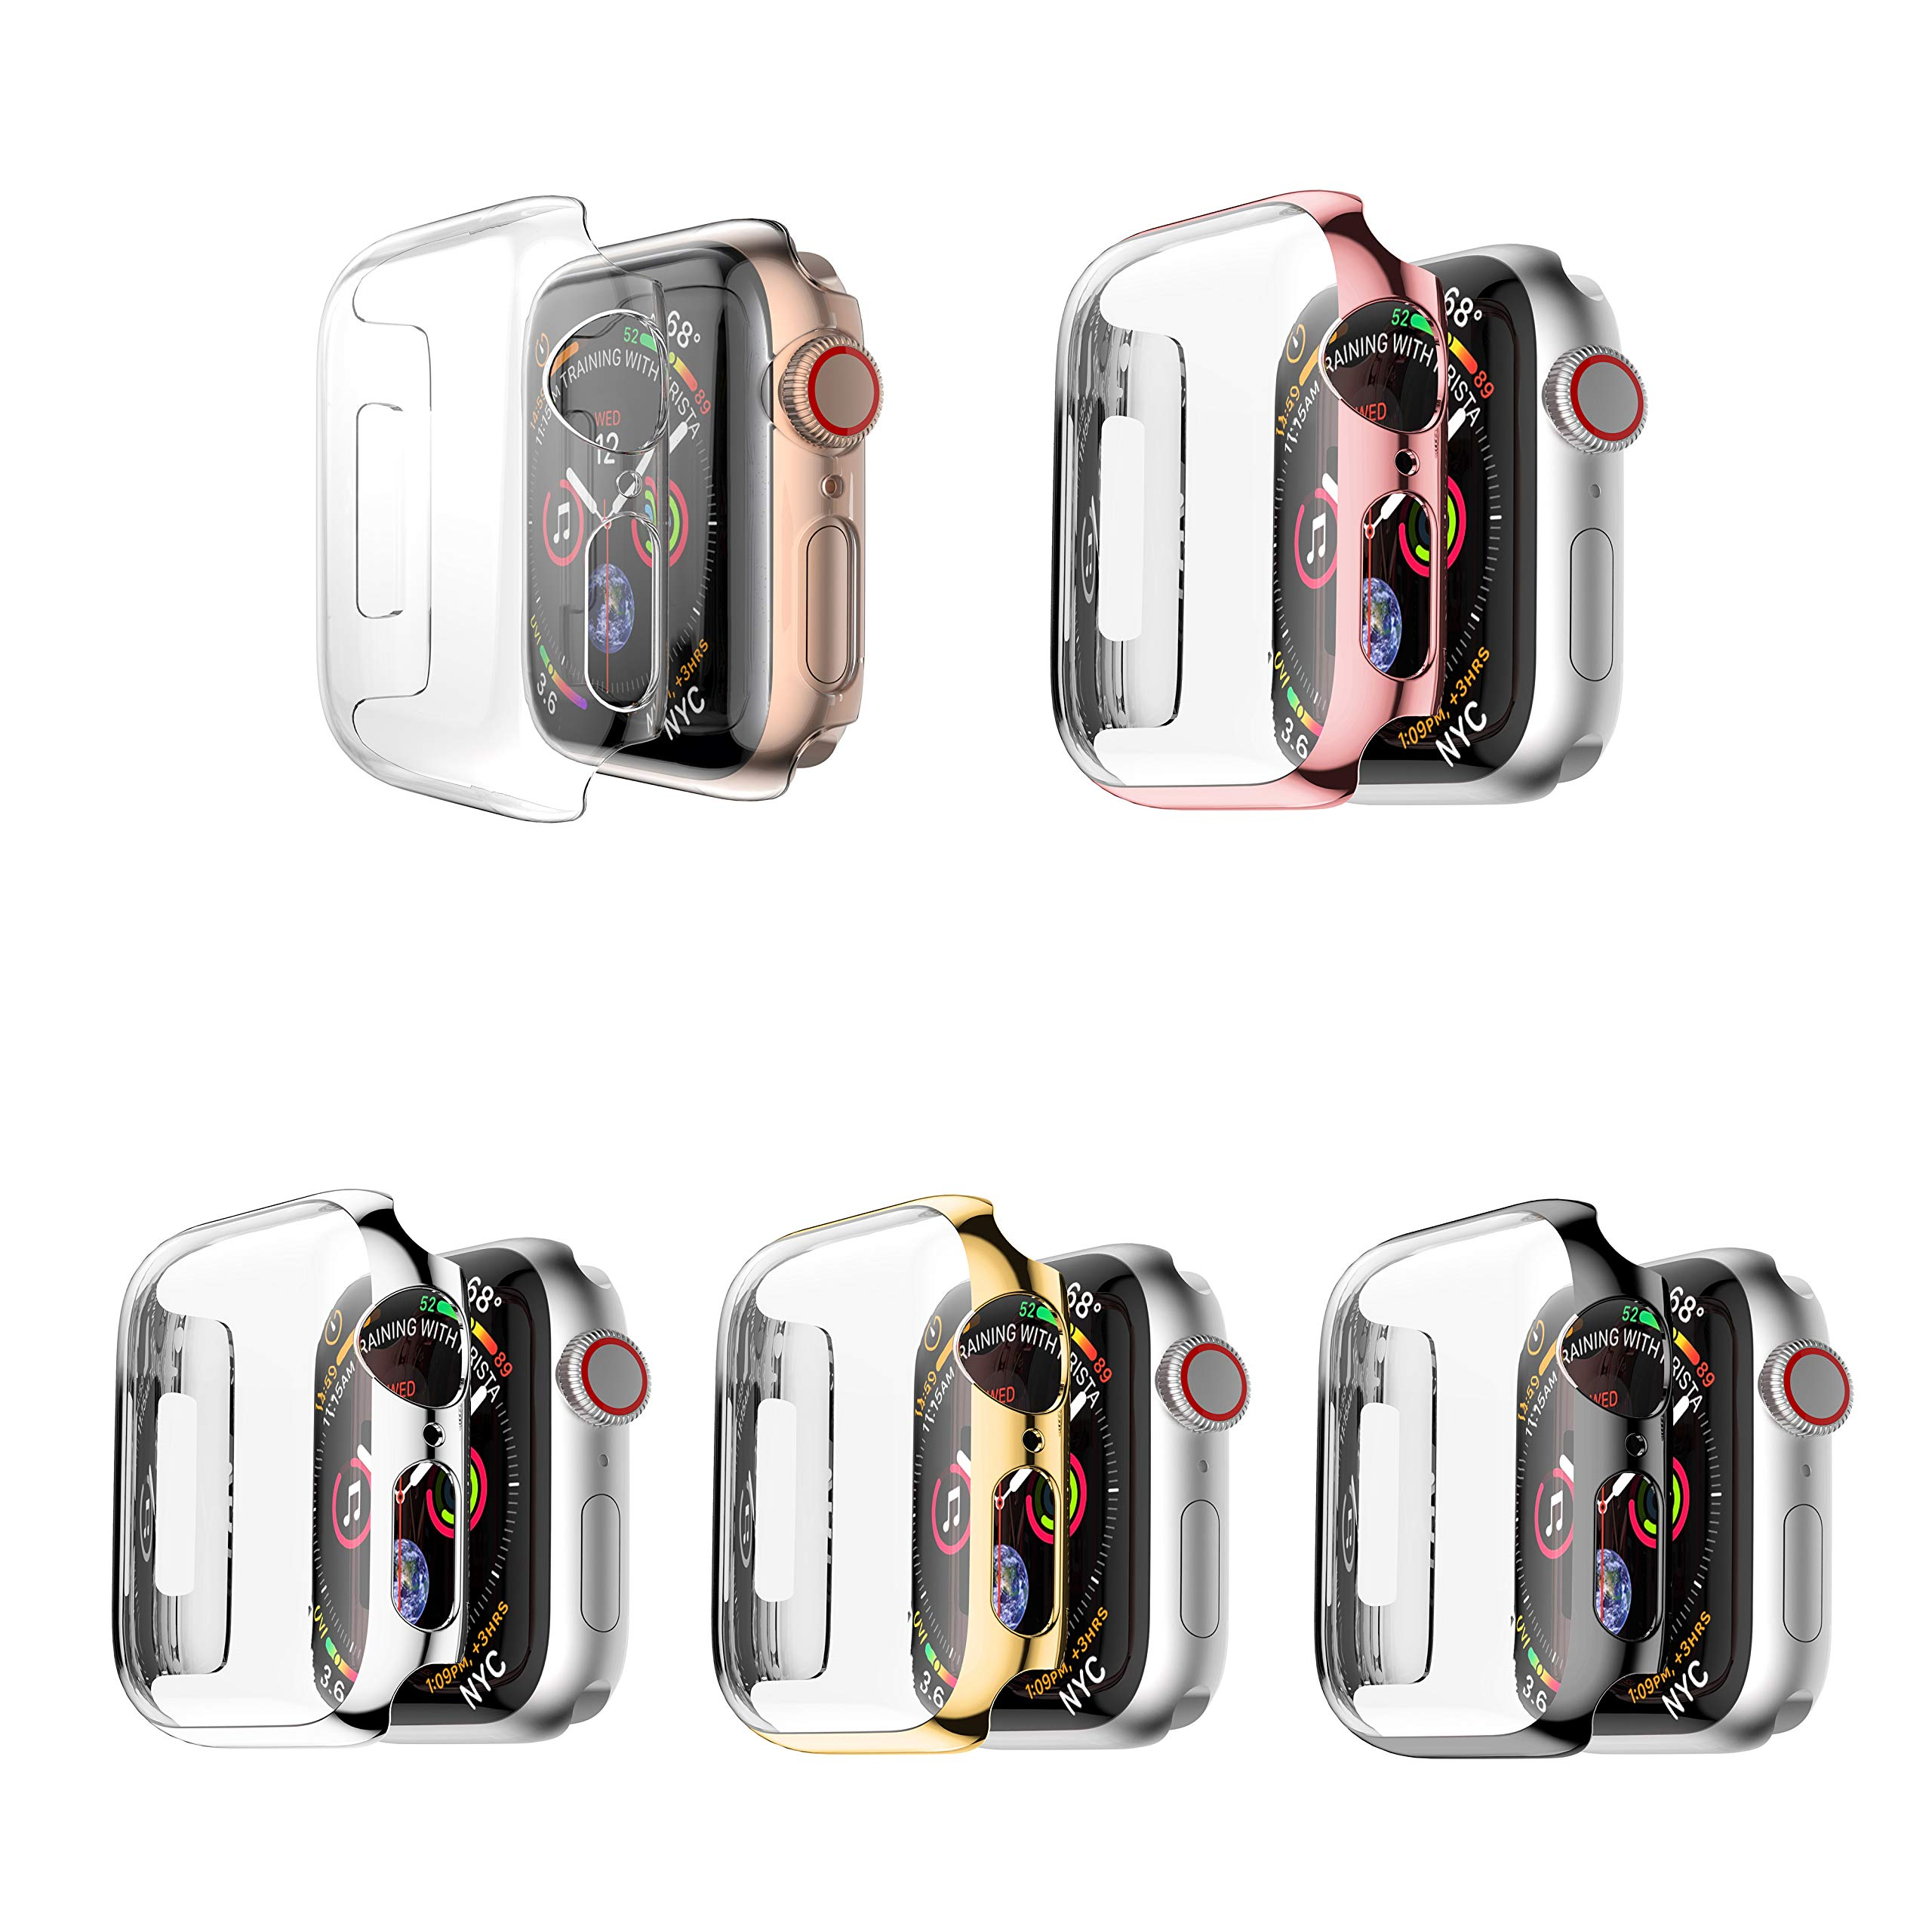 Leotop Compatible with Apple Watch Case 44mm 40mm, Super Thin PC Plated Bumper Clear Screen Protector Full Cover Shell Shockproof Frame Compatible iWatch Series 4 (5 Color Pack, 40mm)